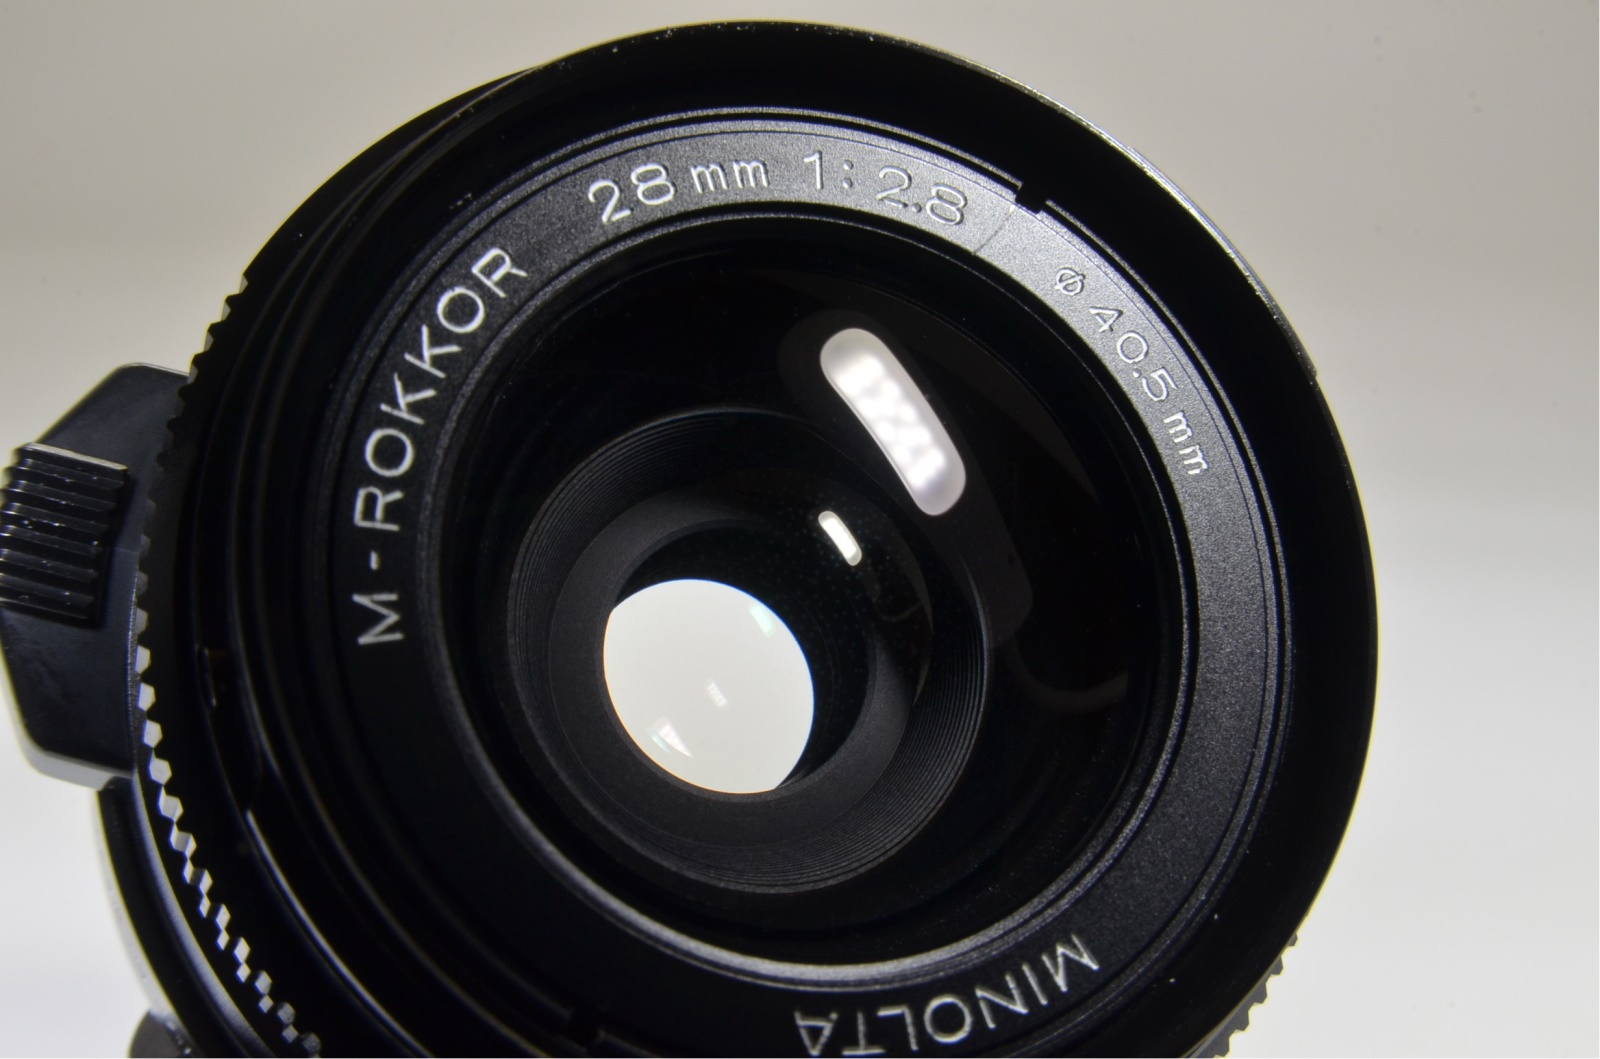 minolta cle film camera, m-rokkor 40mm, 90mm, 28mm, flash, grip shooting tested